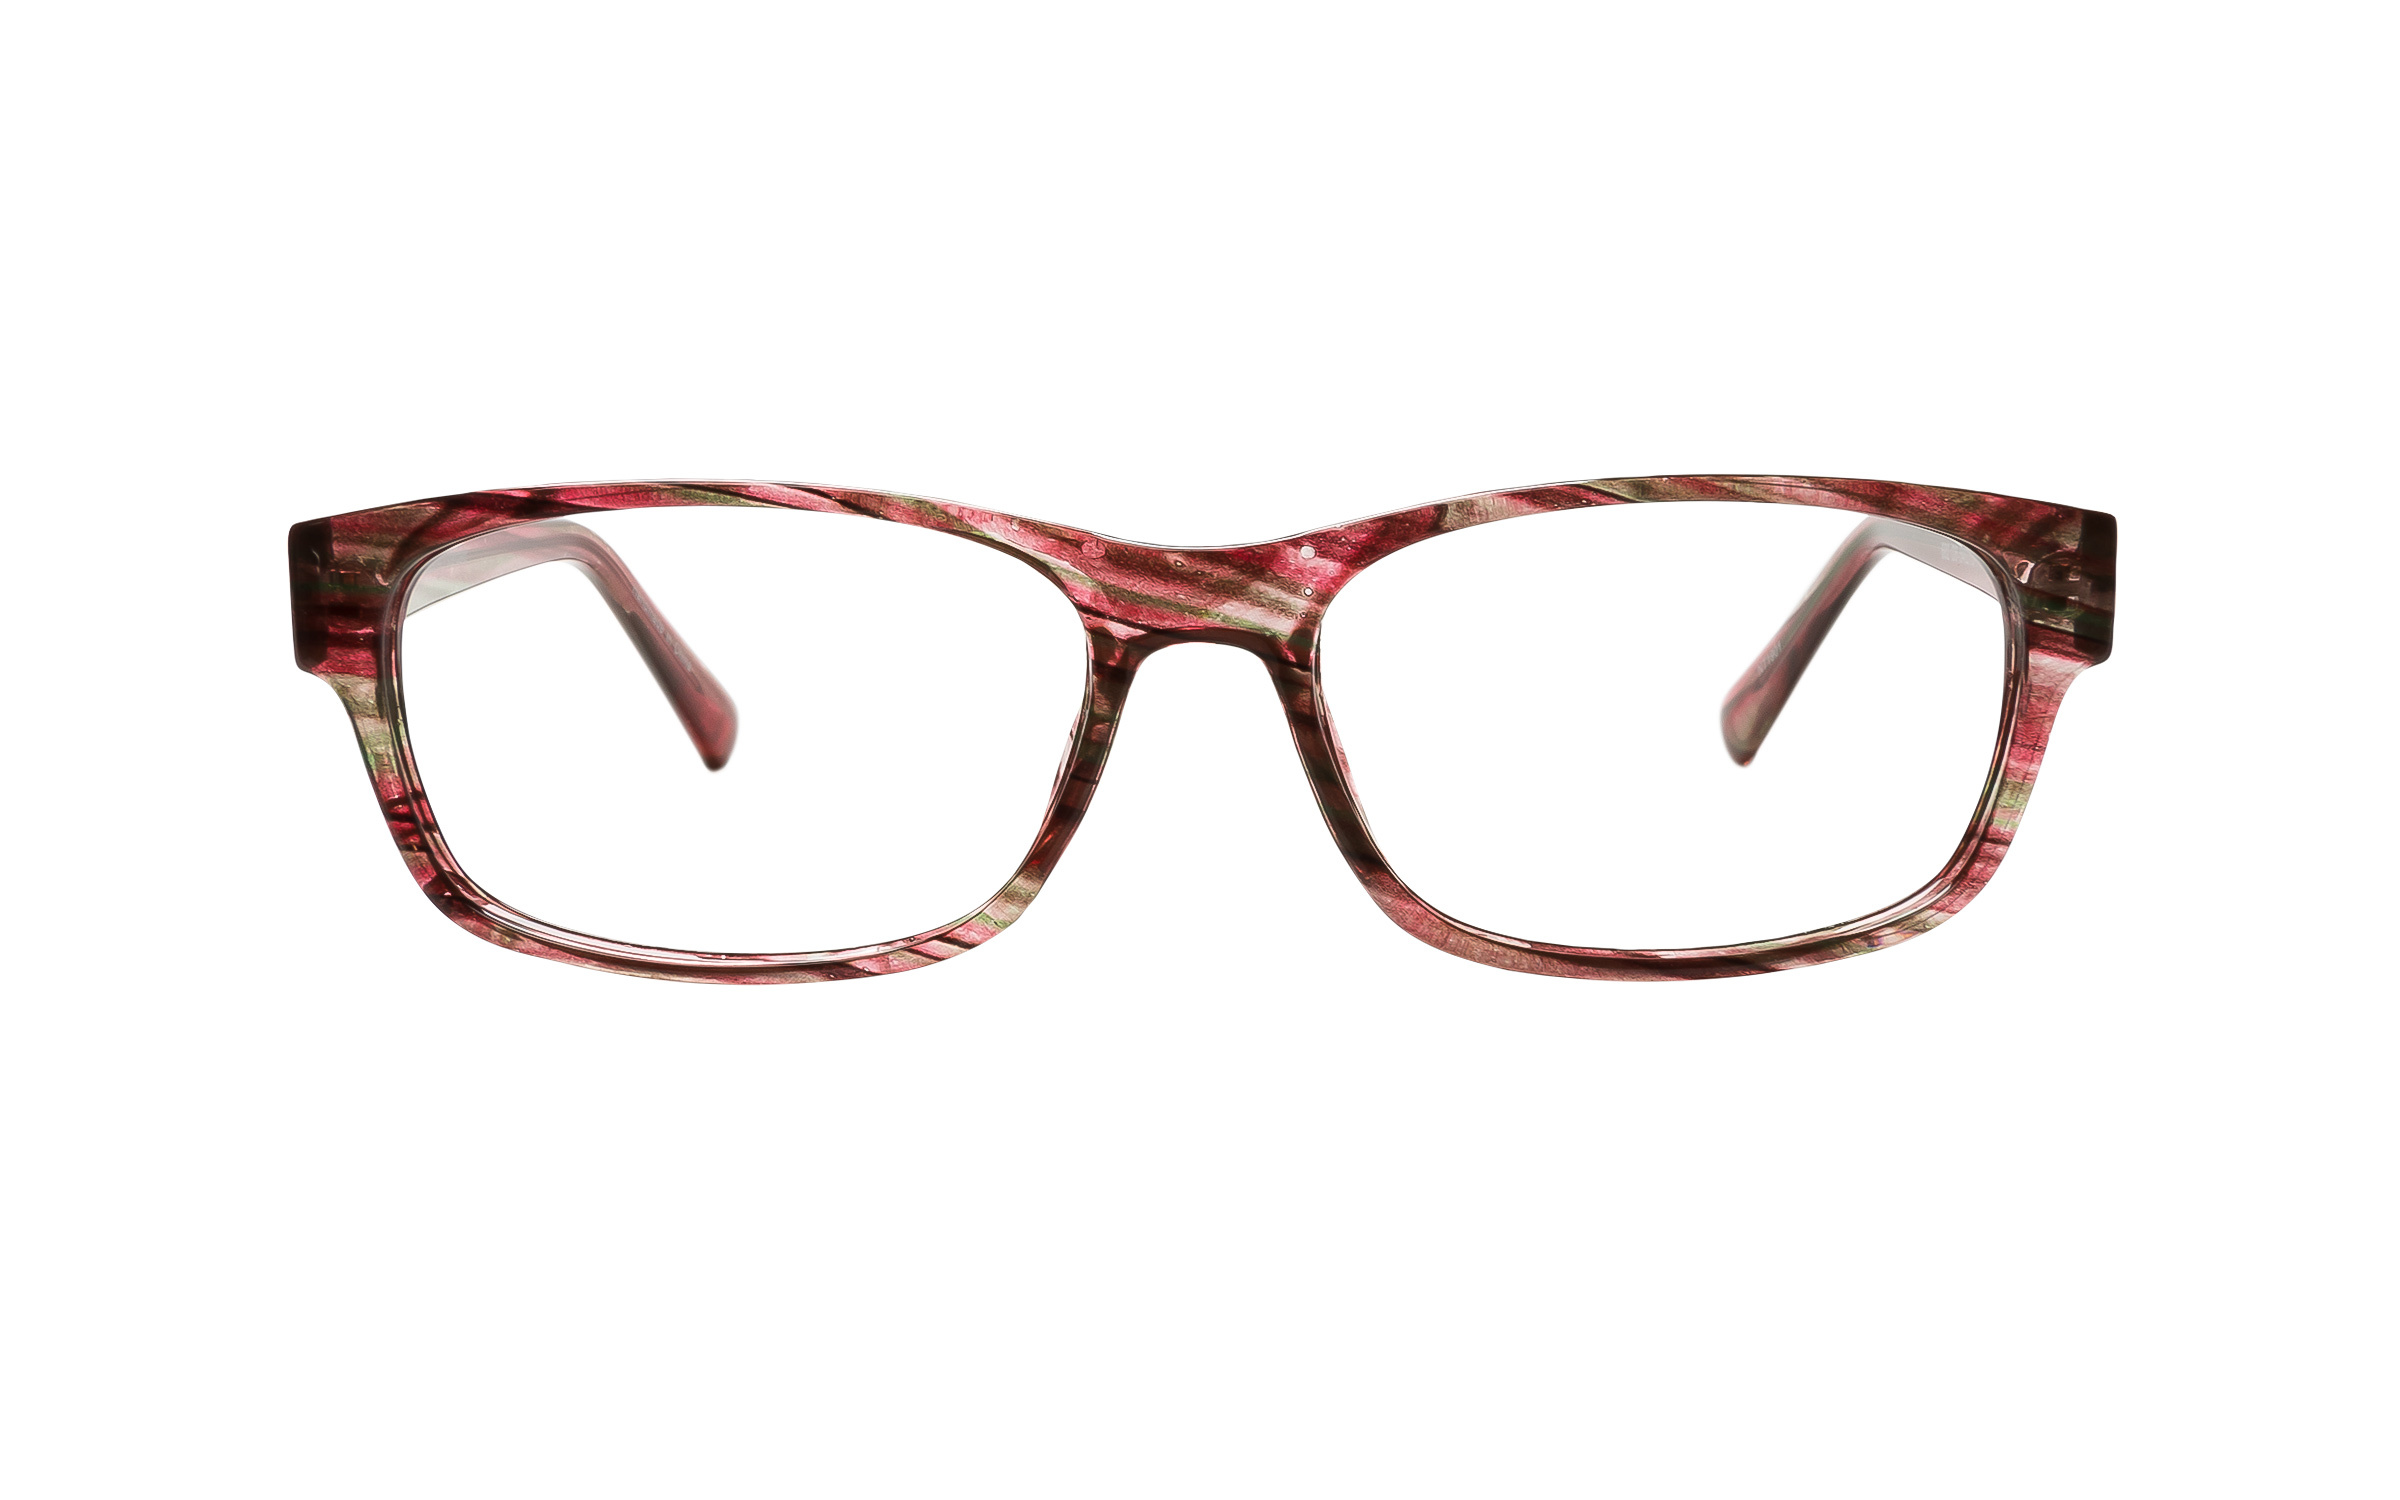 Clearly Basics Englee 682 C6 (54) Eyeglasses and Frame in Stripe Red | Plastic - Online Coastal